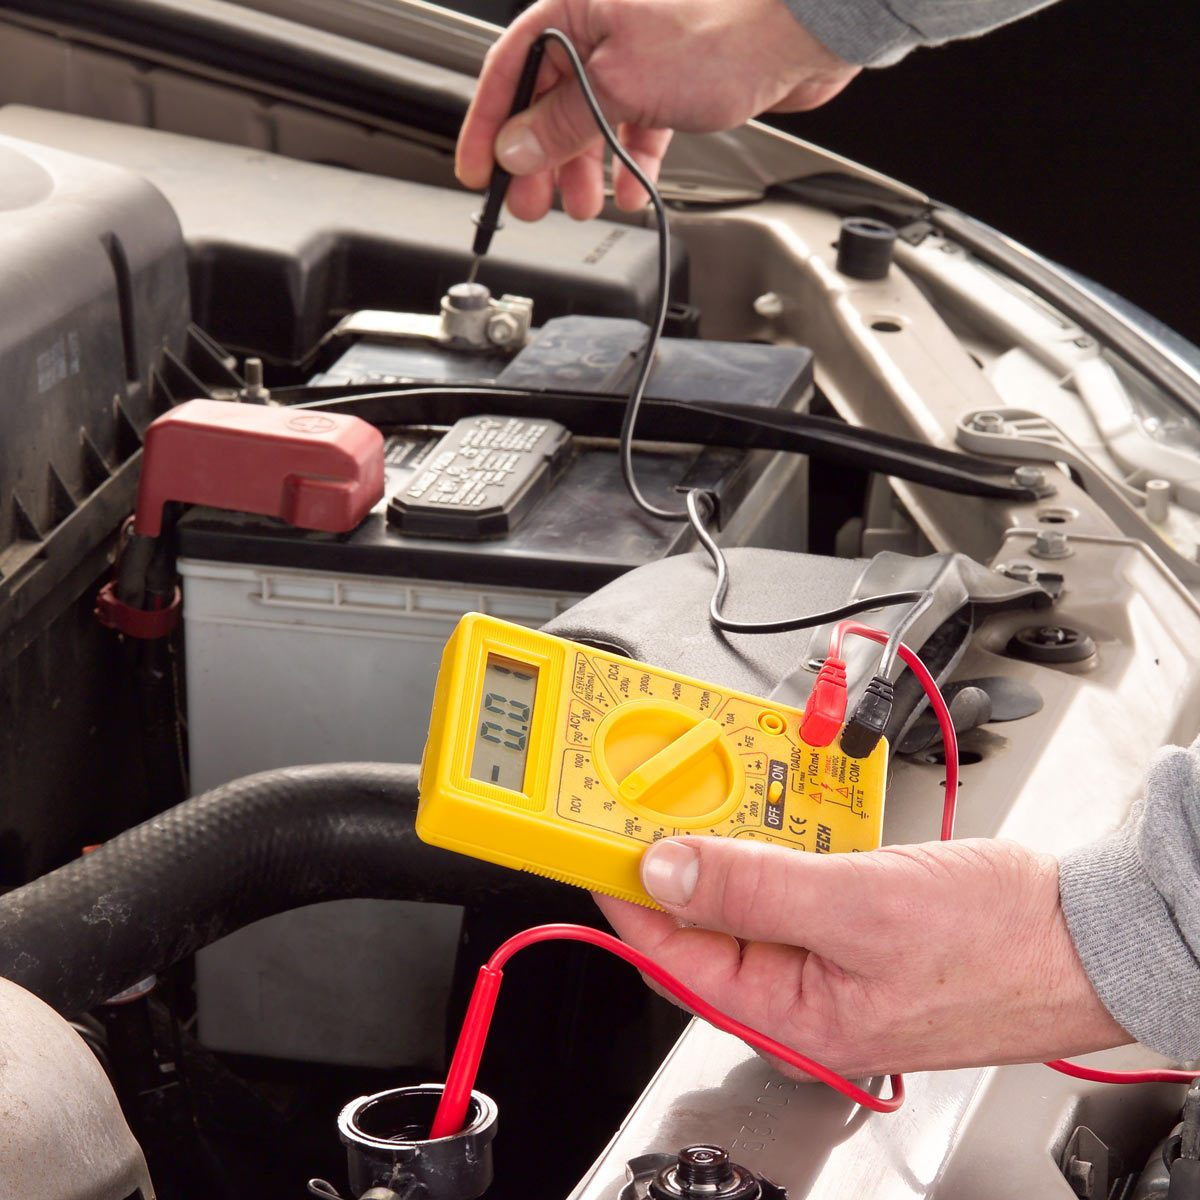 How To Check Antifreeze >> Coolant Testing With A Multimeter Family Handyman